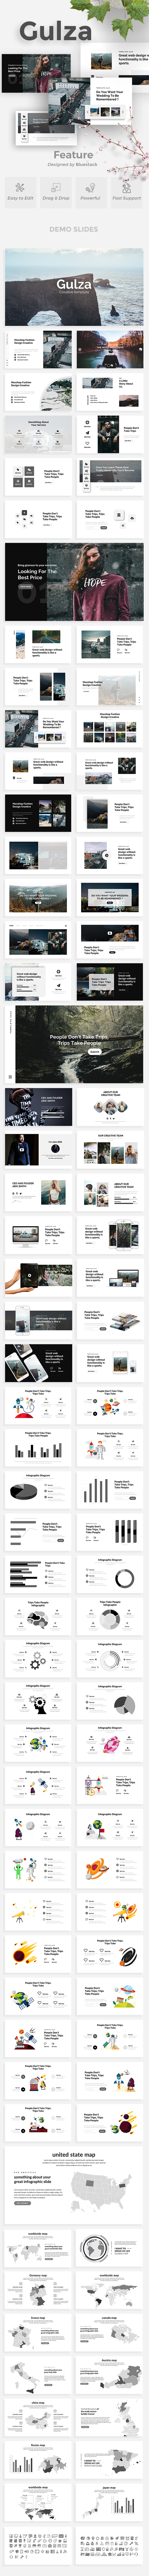 Gulza Creative Powerpoint Template - Creative PowerPoint Templates